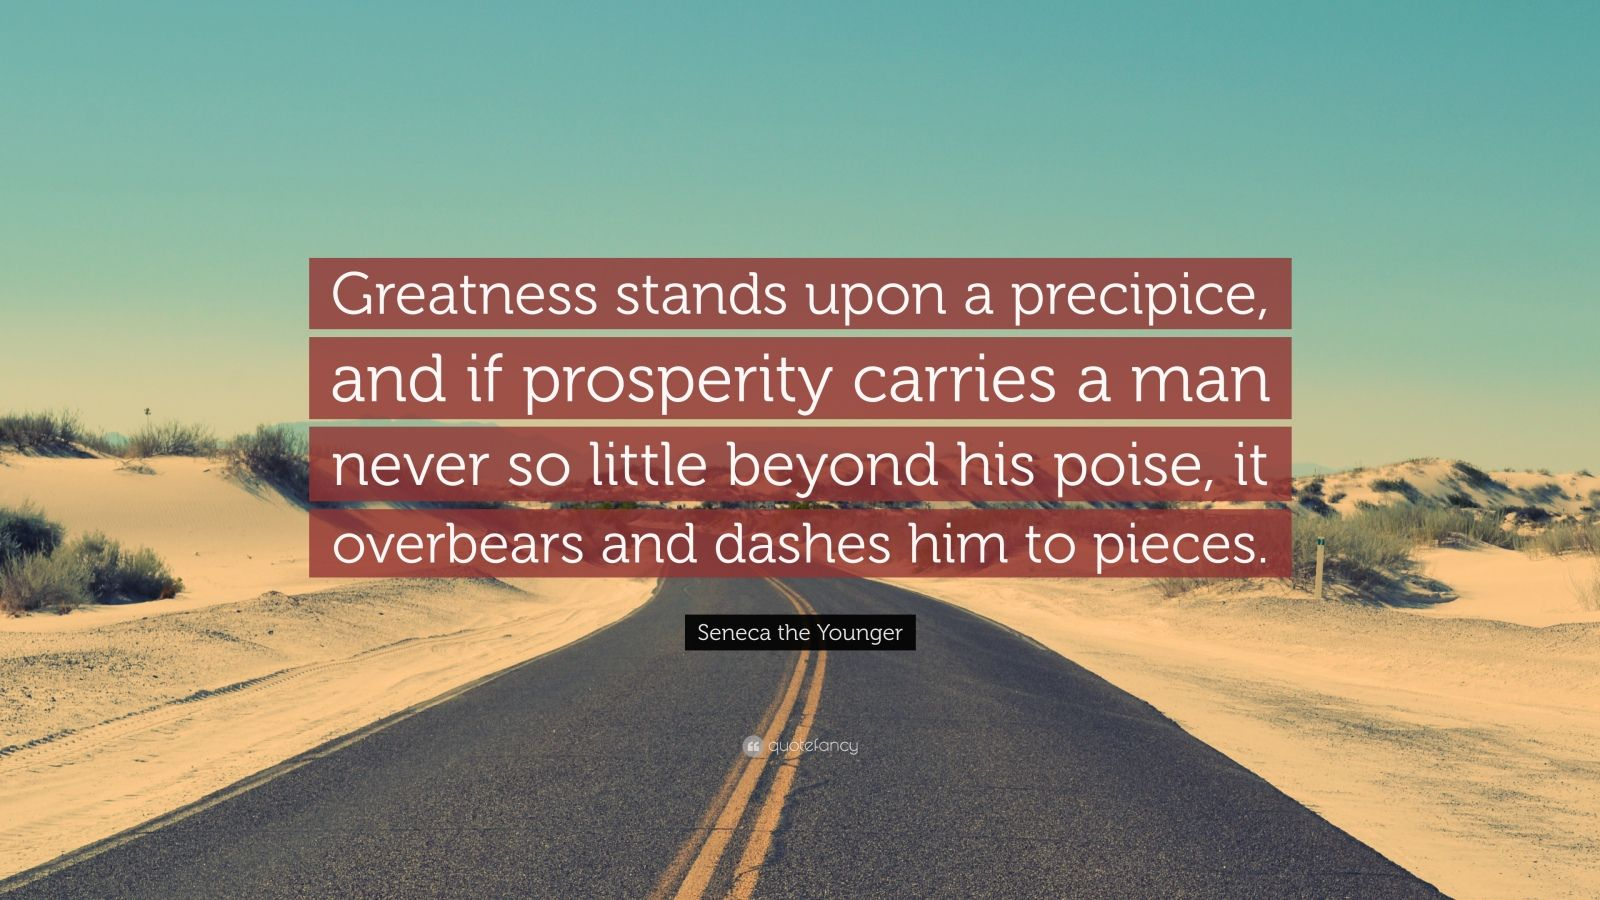 """Seneca the Younger Quote: """"Greatness stands upon a precipice, and if prosperity carries a man never so little beyond his poise, it overbears and dashes him to pieces."""""""